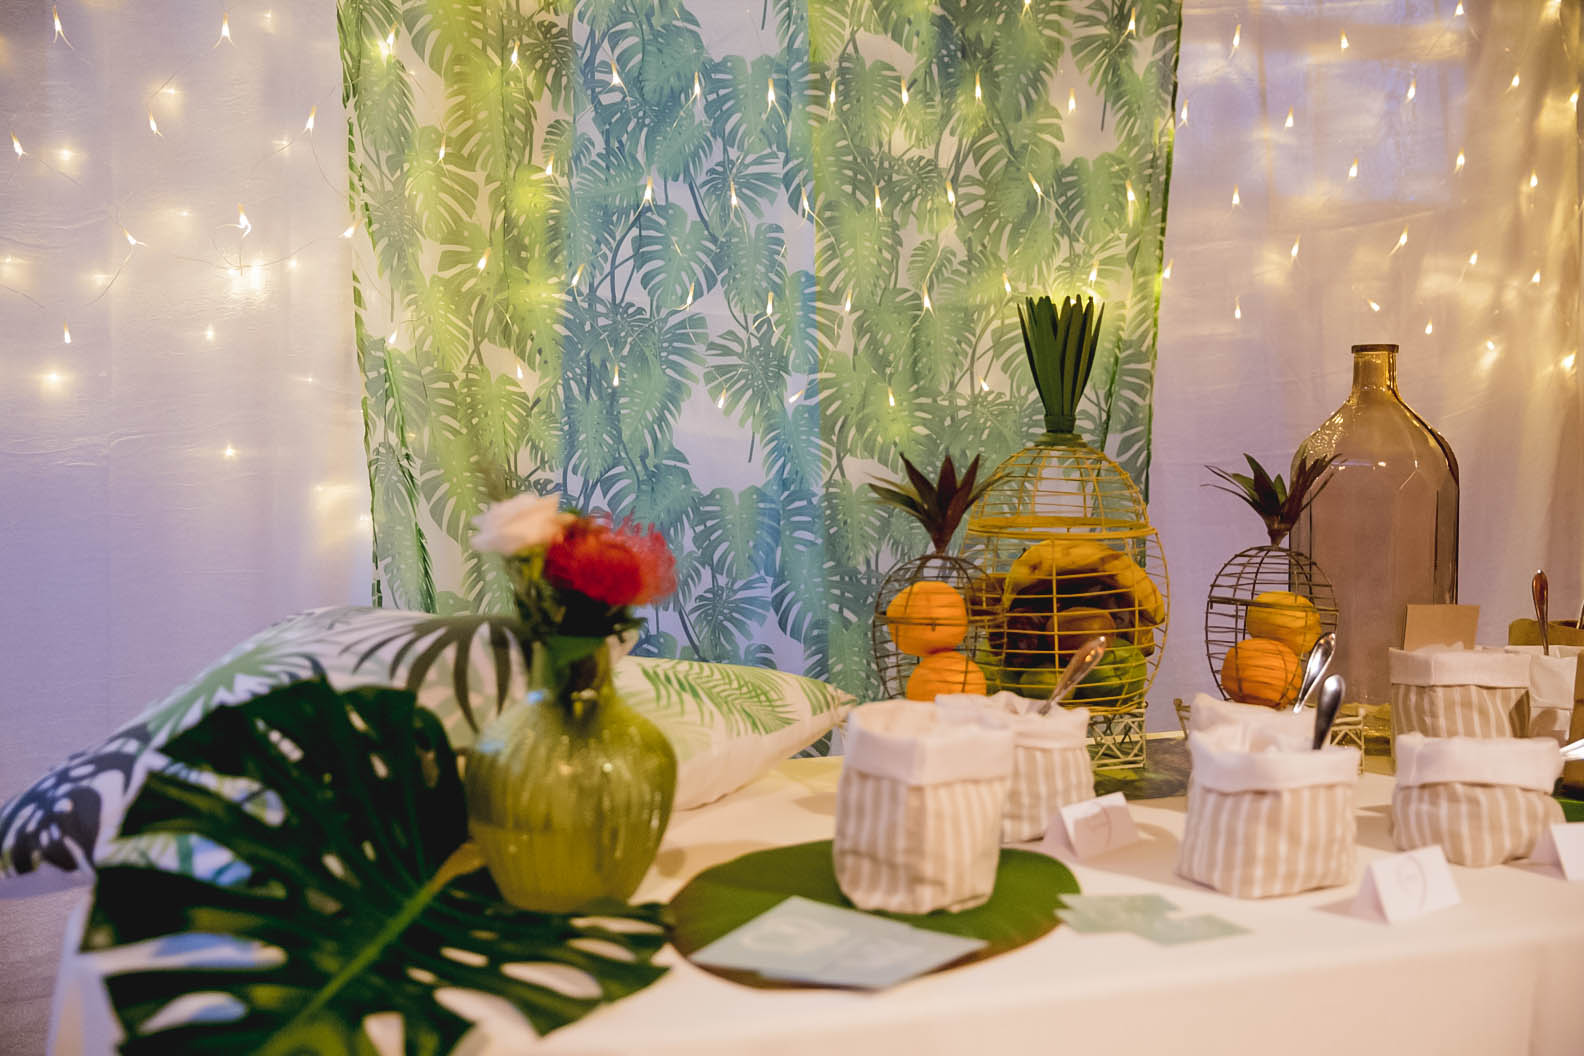 Sweet table tropicale